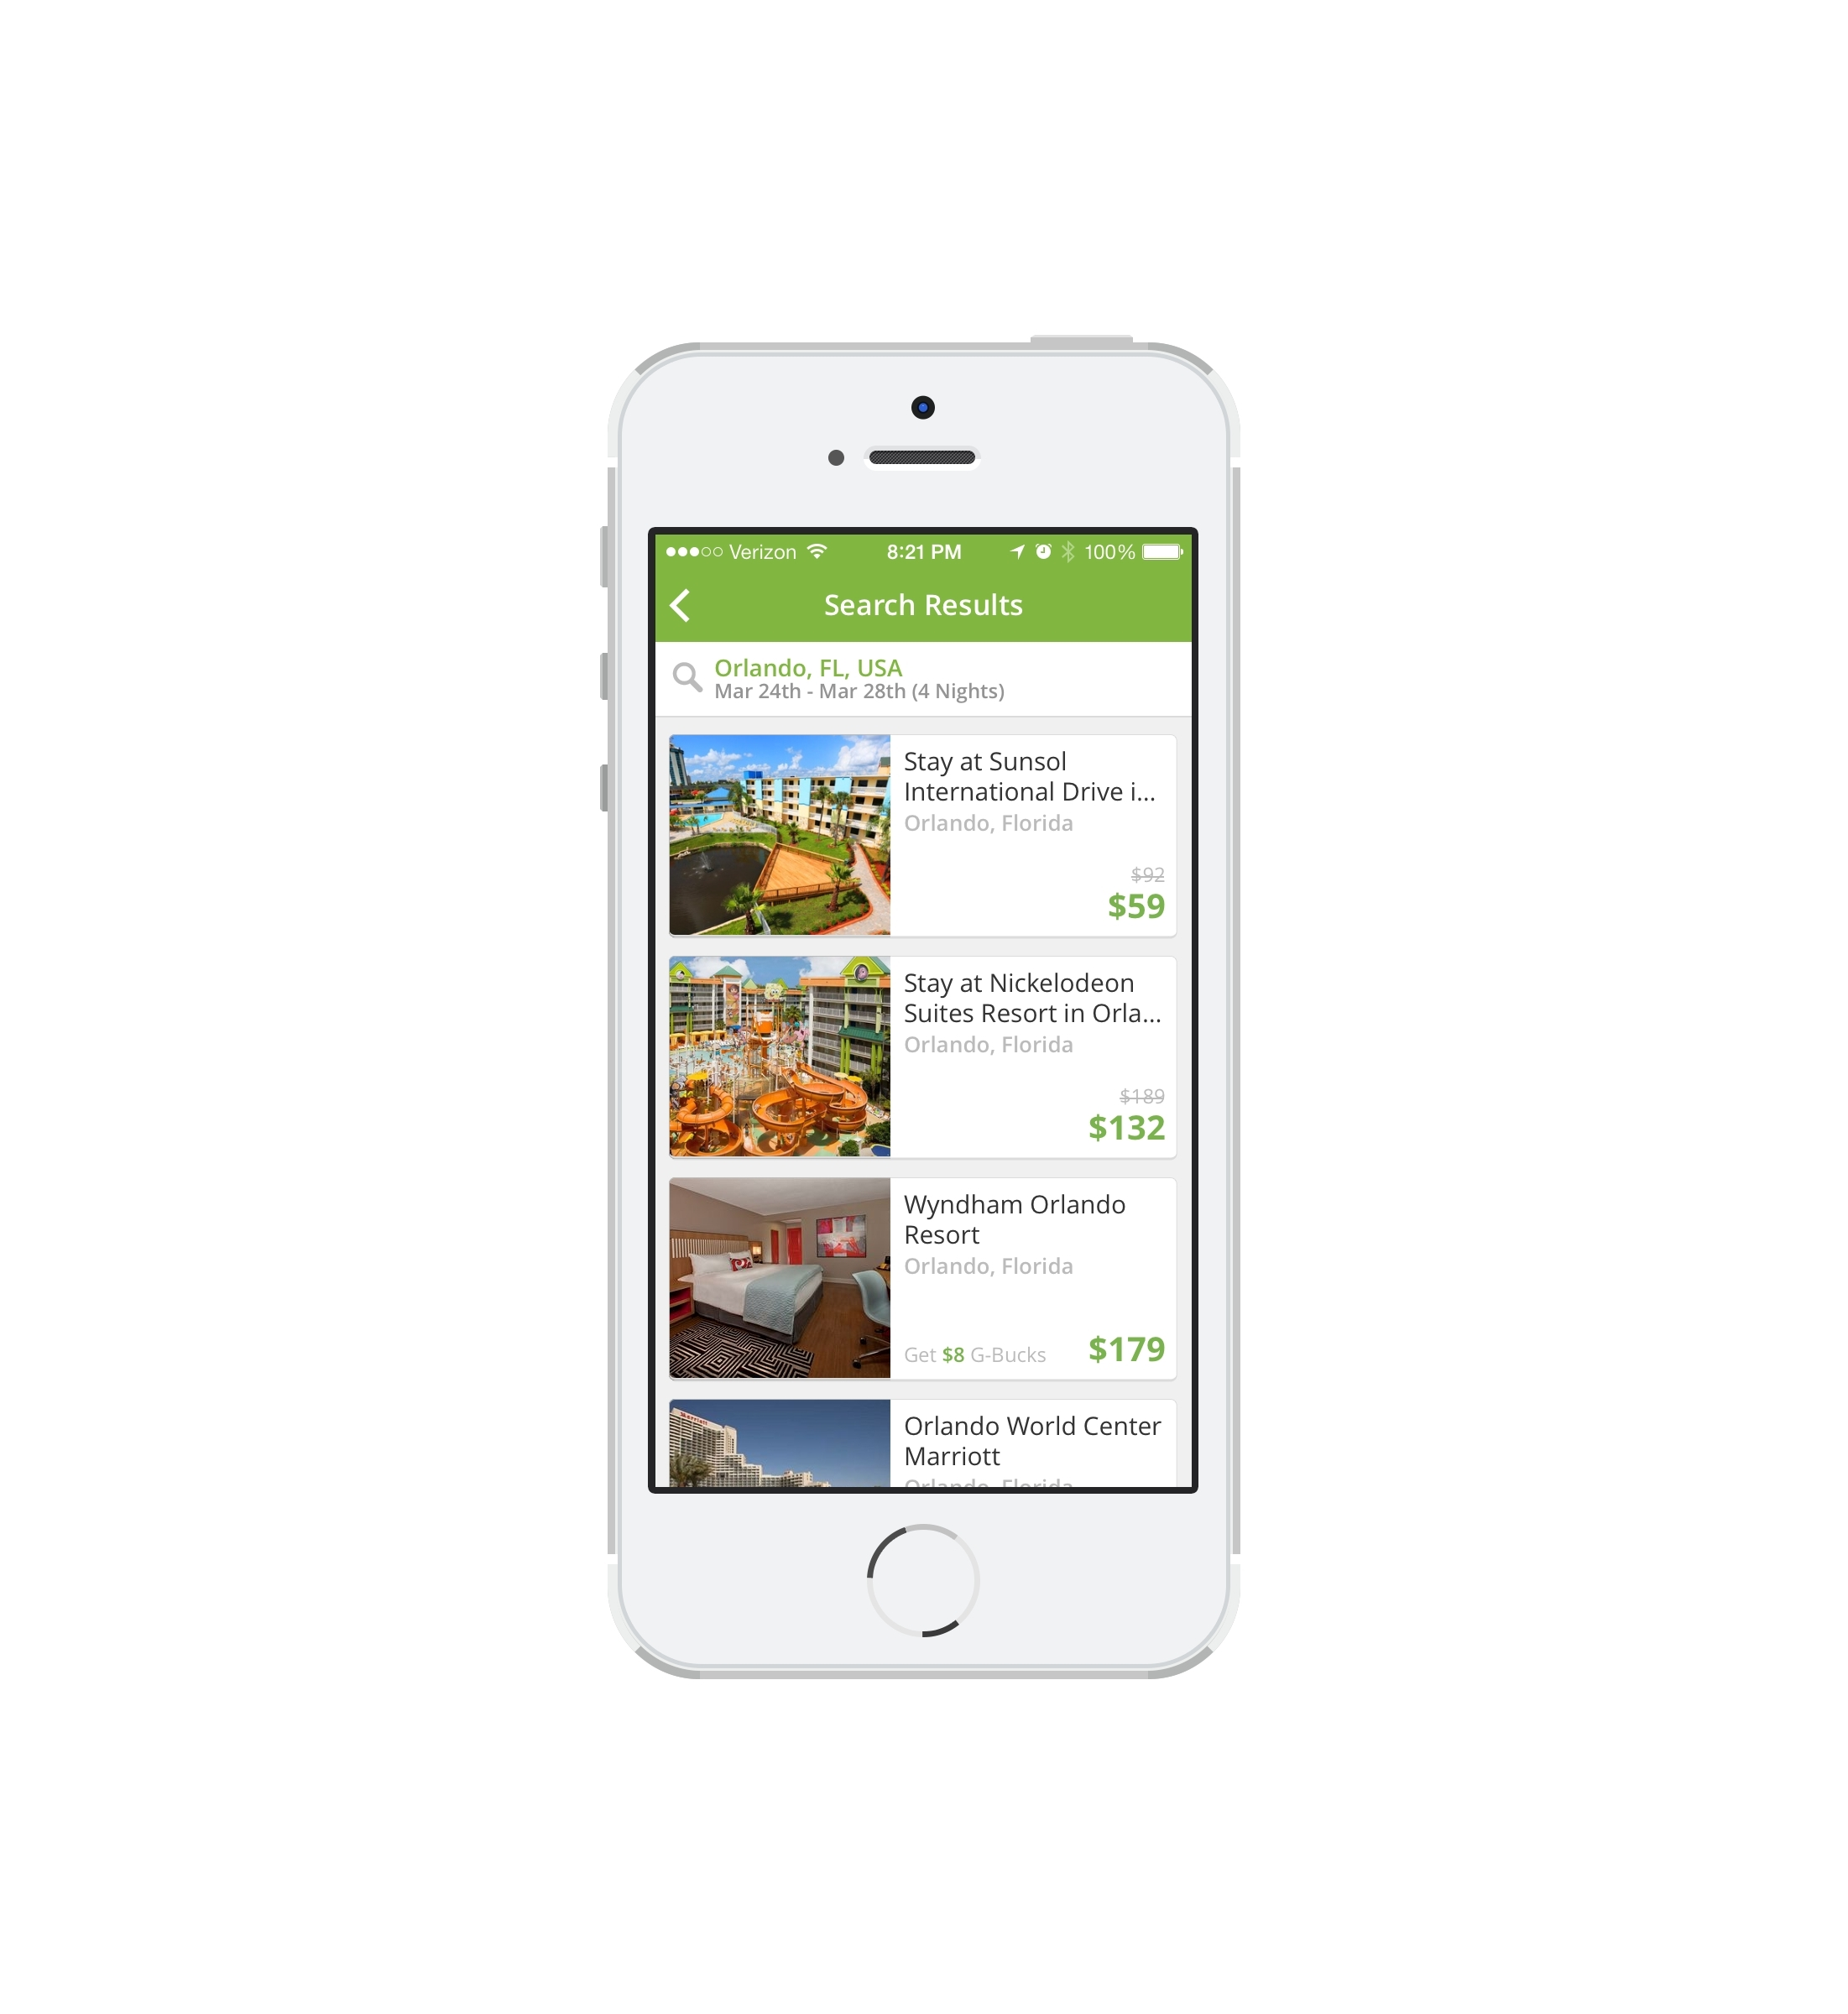 Groupon announced a significant expansion of its Groupon Getaways marketplace with the addition of approximately 20,000 new hotels in all of the most popular destinations around the world. (Photo: Business Wire)